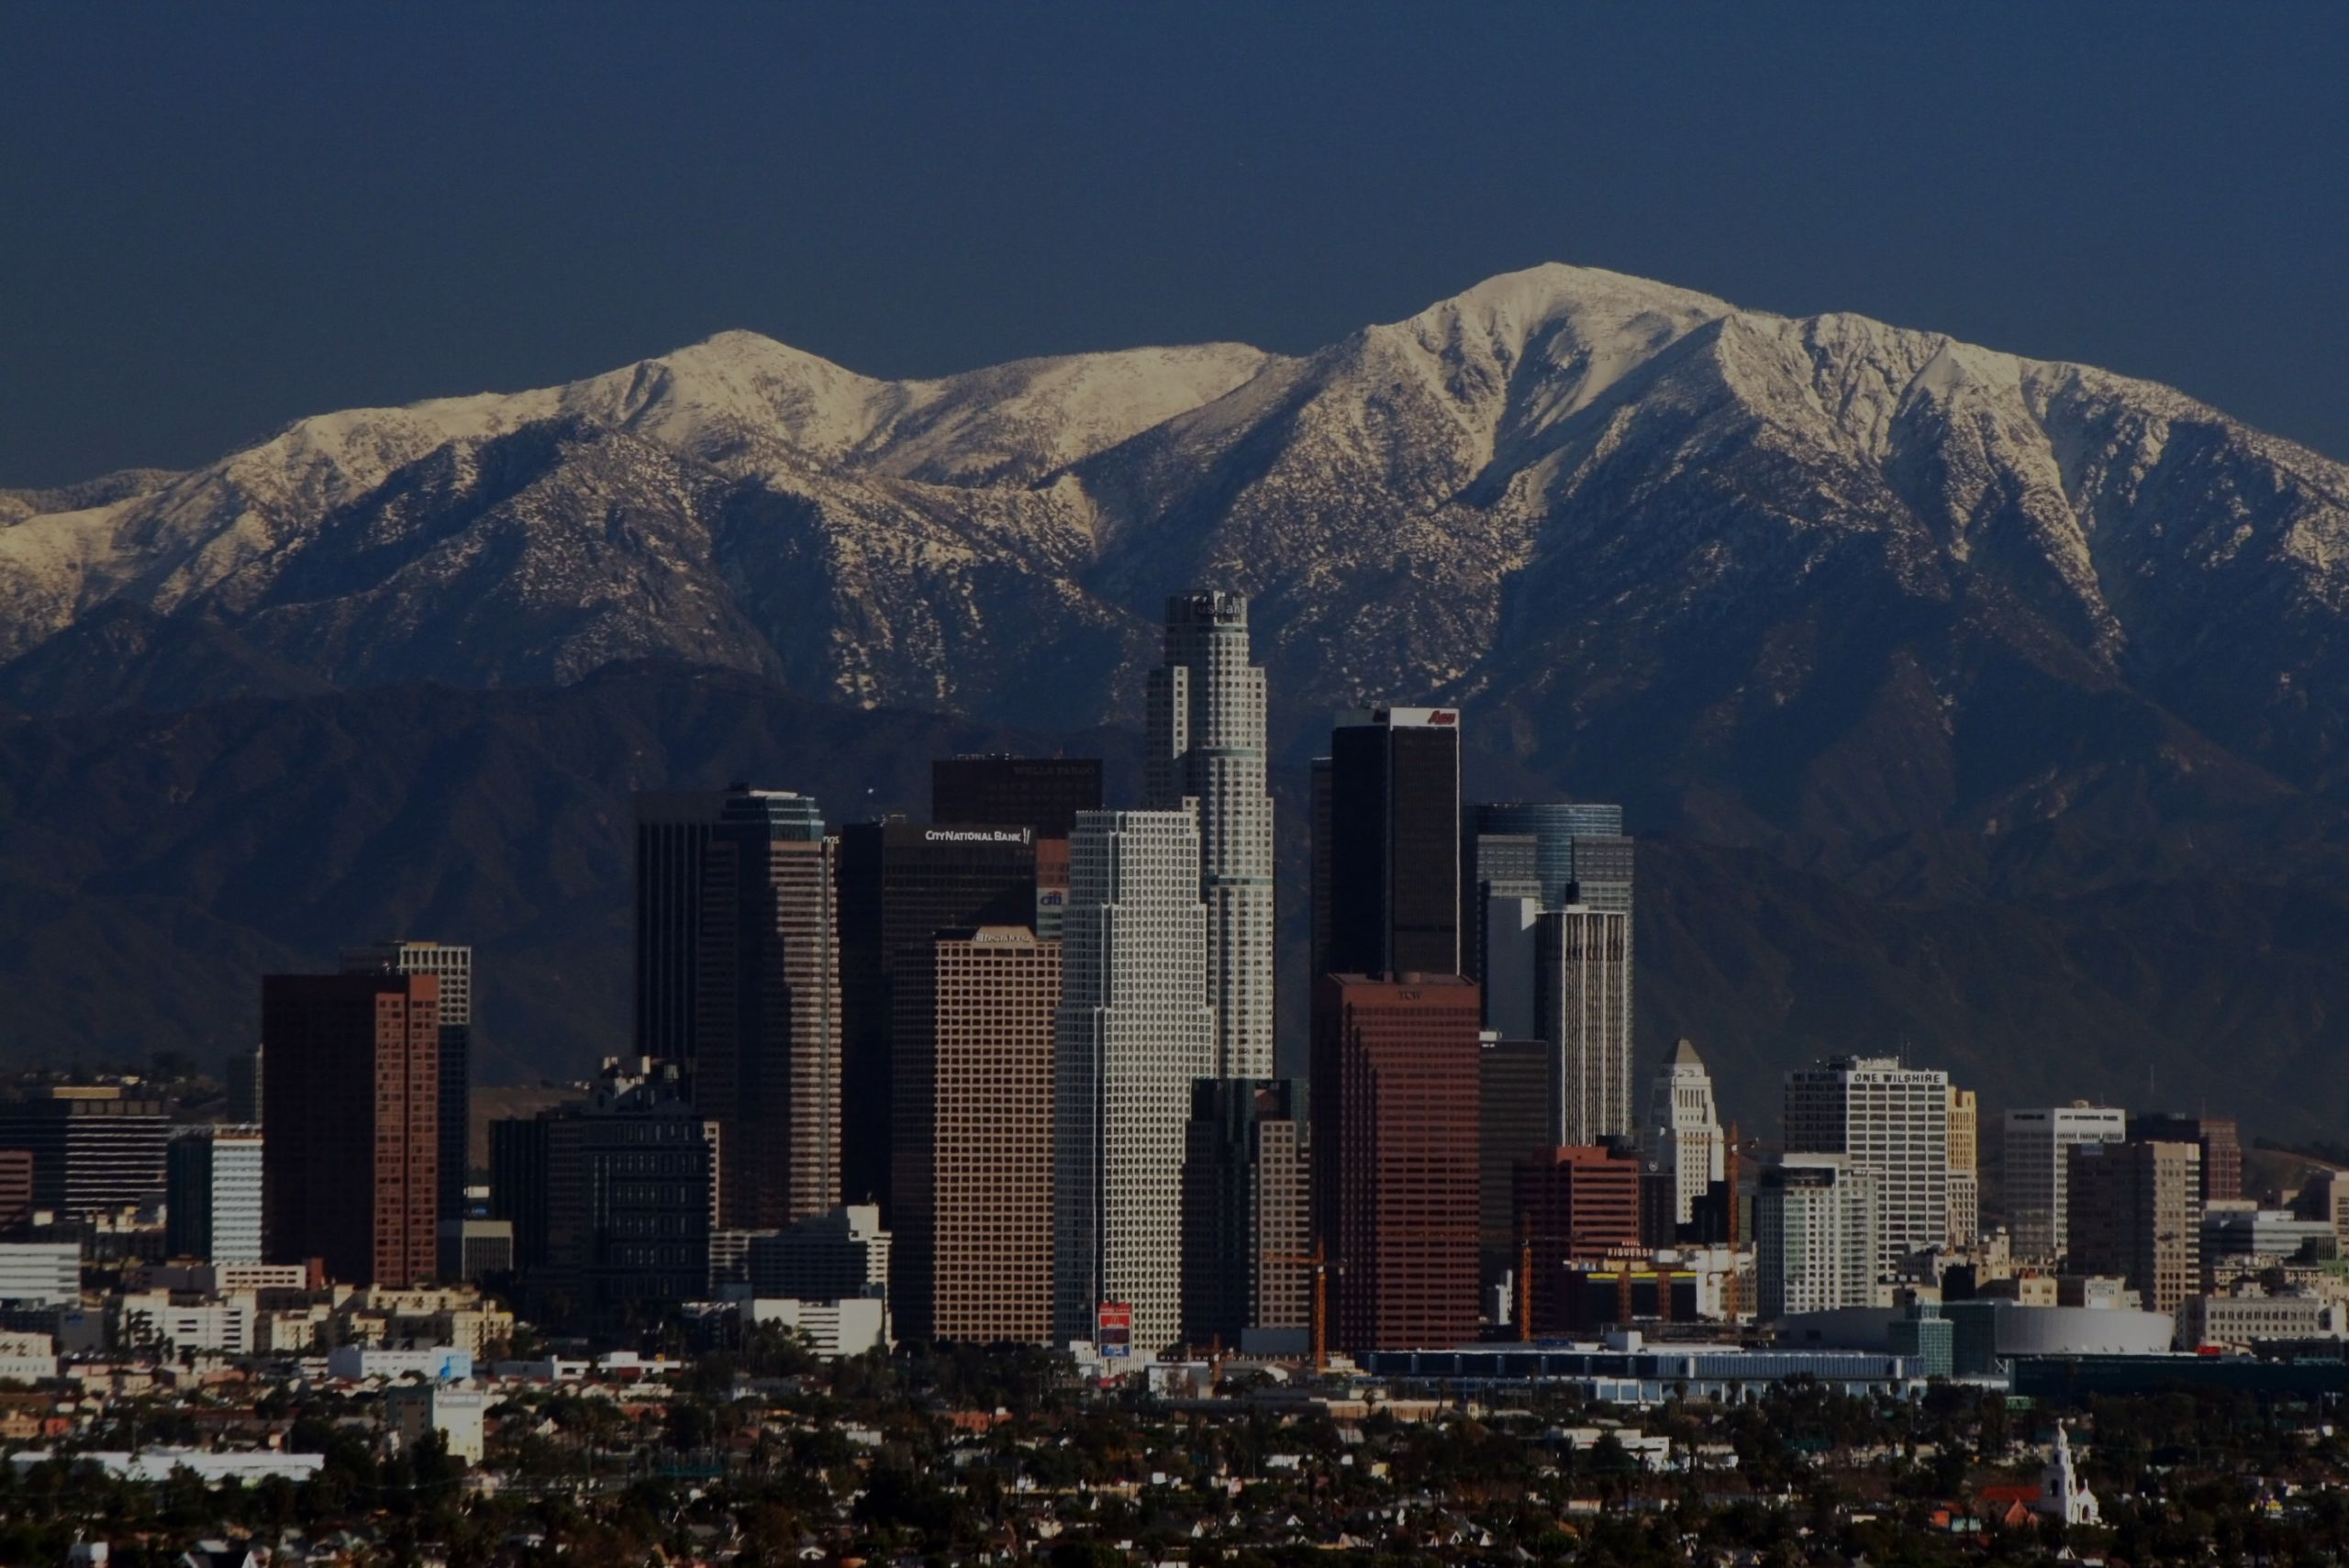 Places with Snow Near Los Angeles?